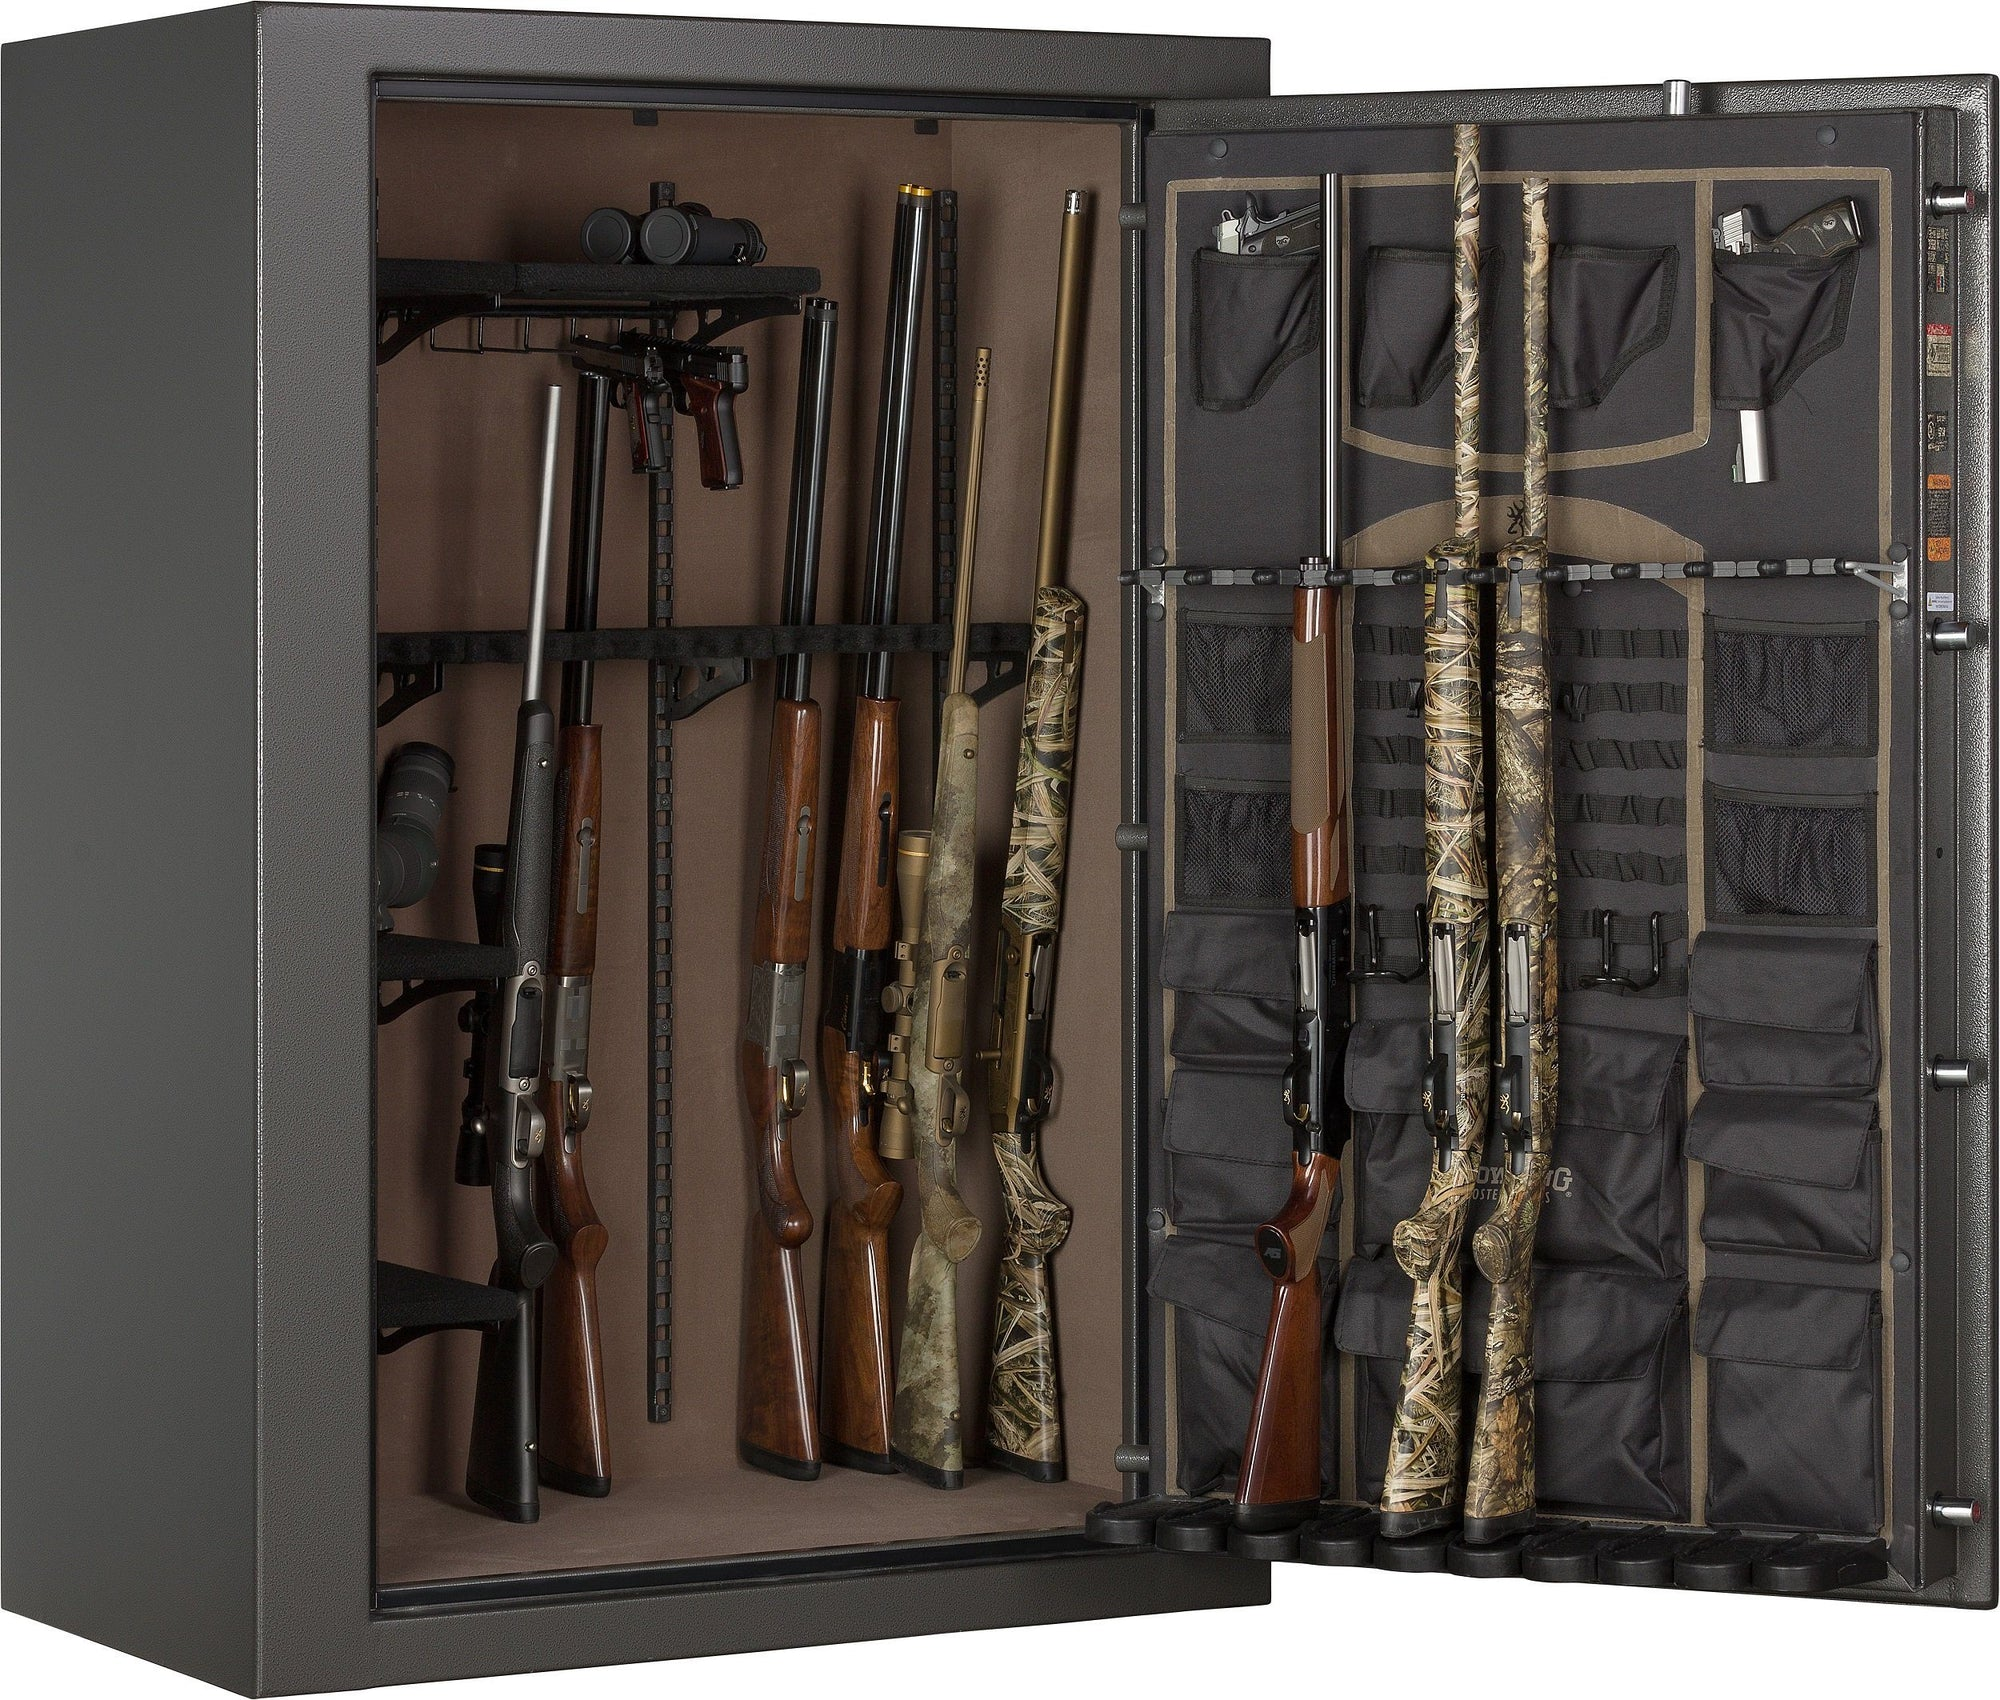 Gun Safes & Rifle Safe Products - Browning HG49 HAWG Gun & Rifle Safe - Putty Gray - 2021 Model